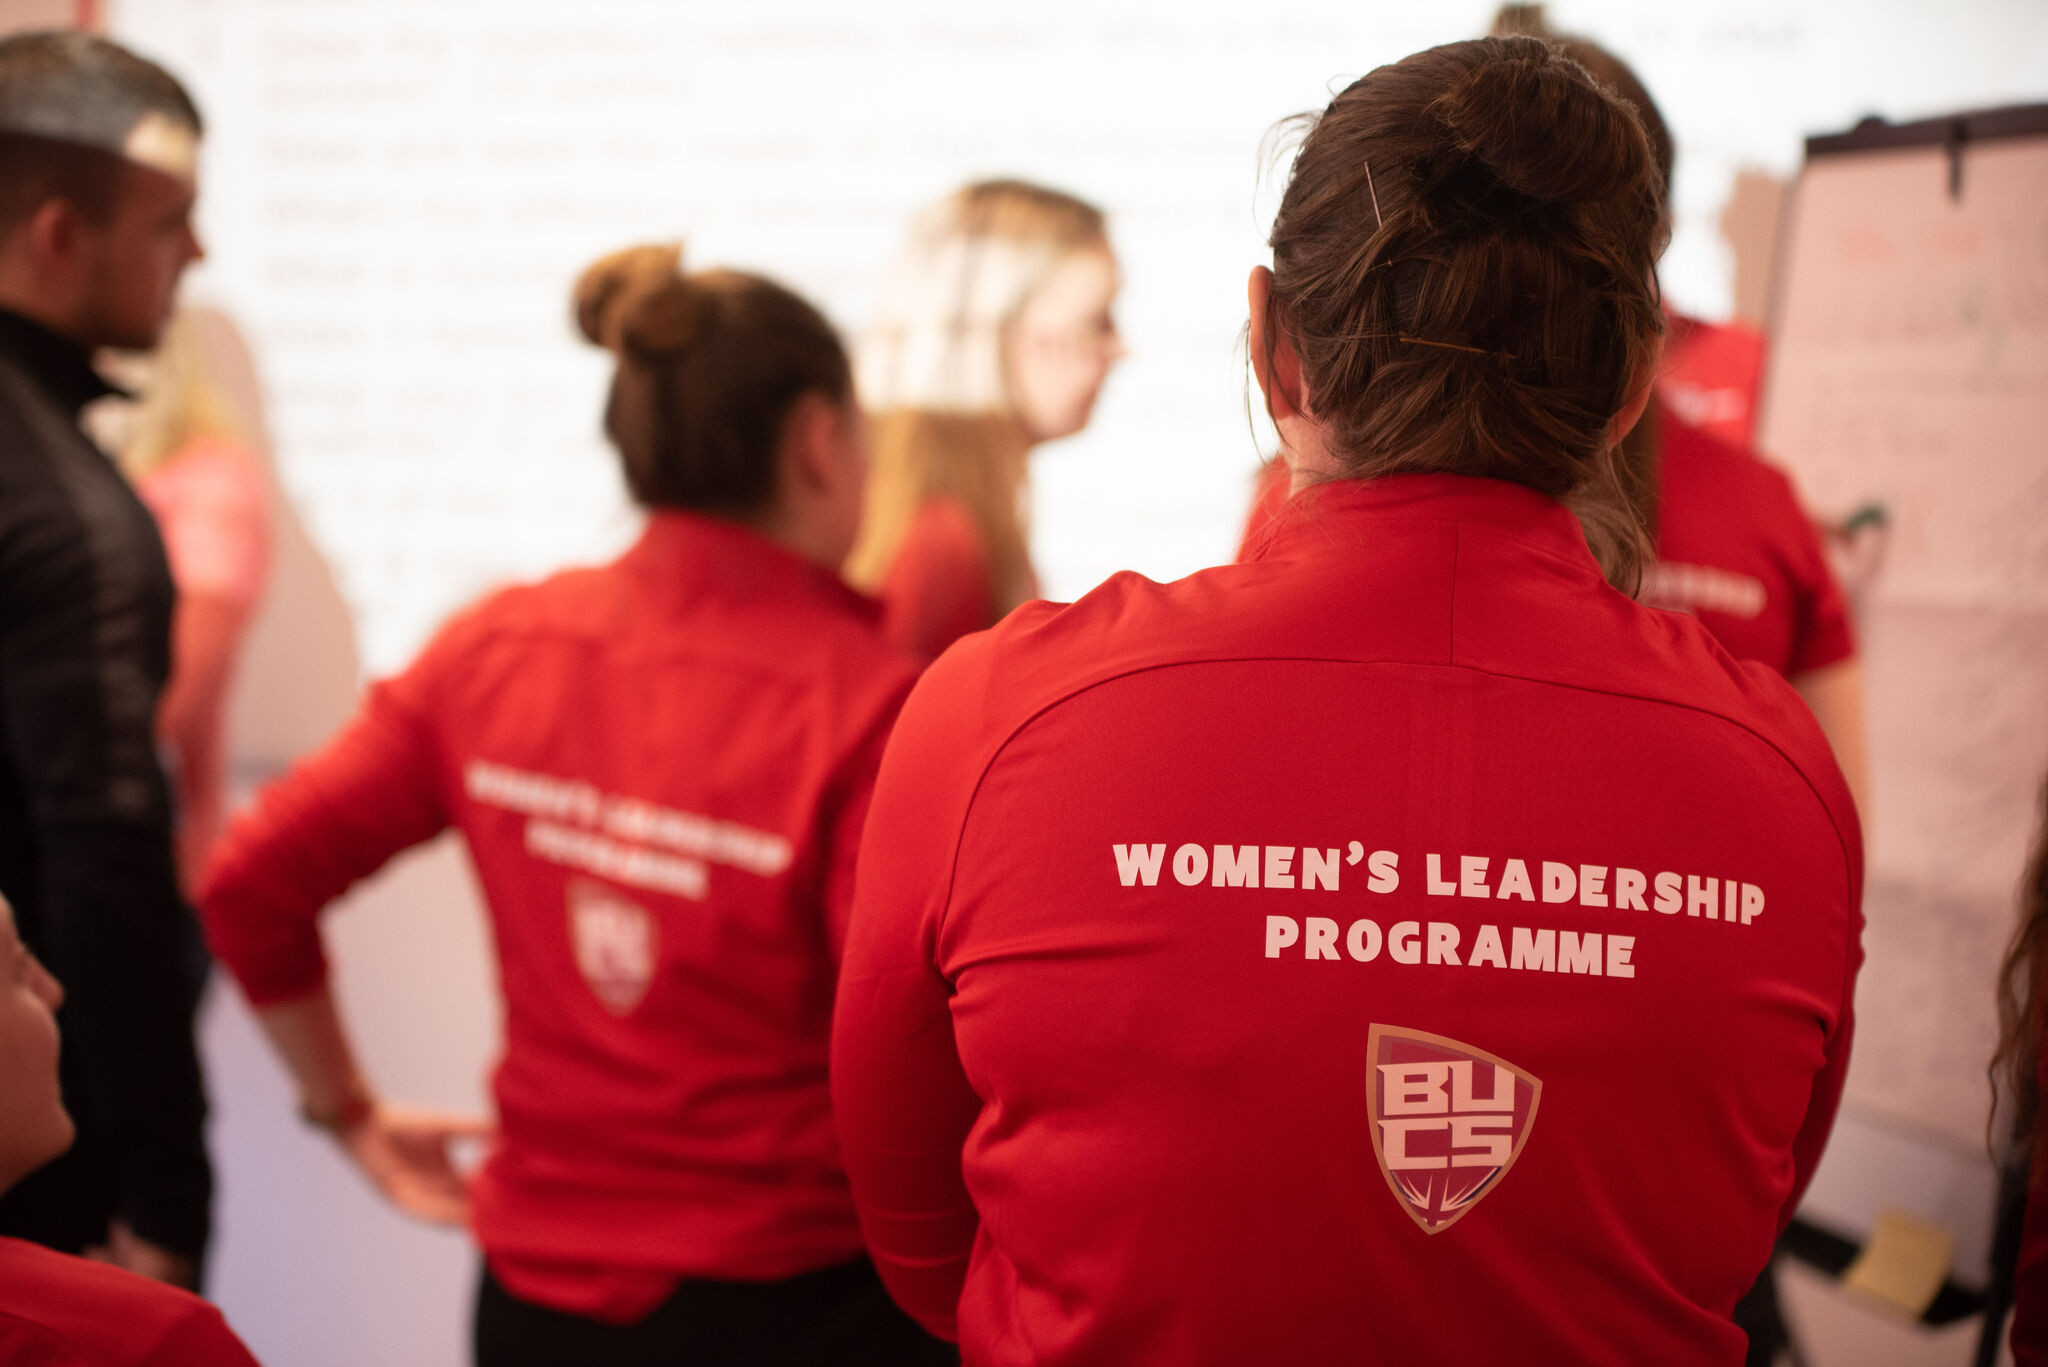 Nominations for the 2021 FISU Gender Equality Awards submitted